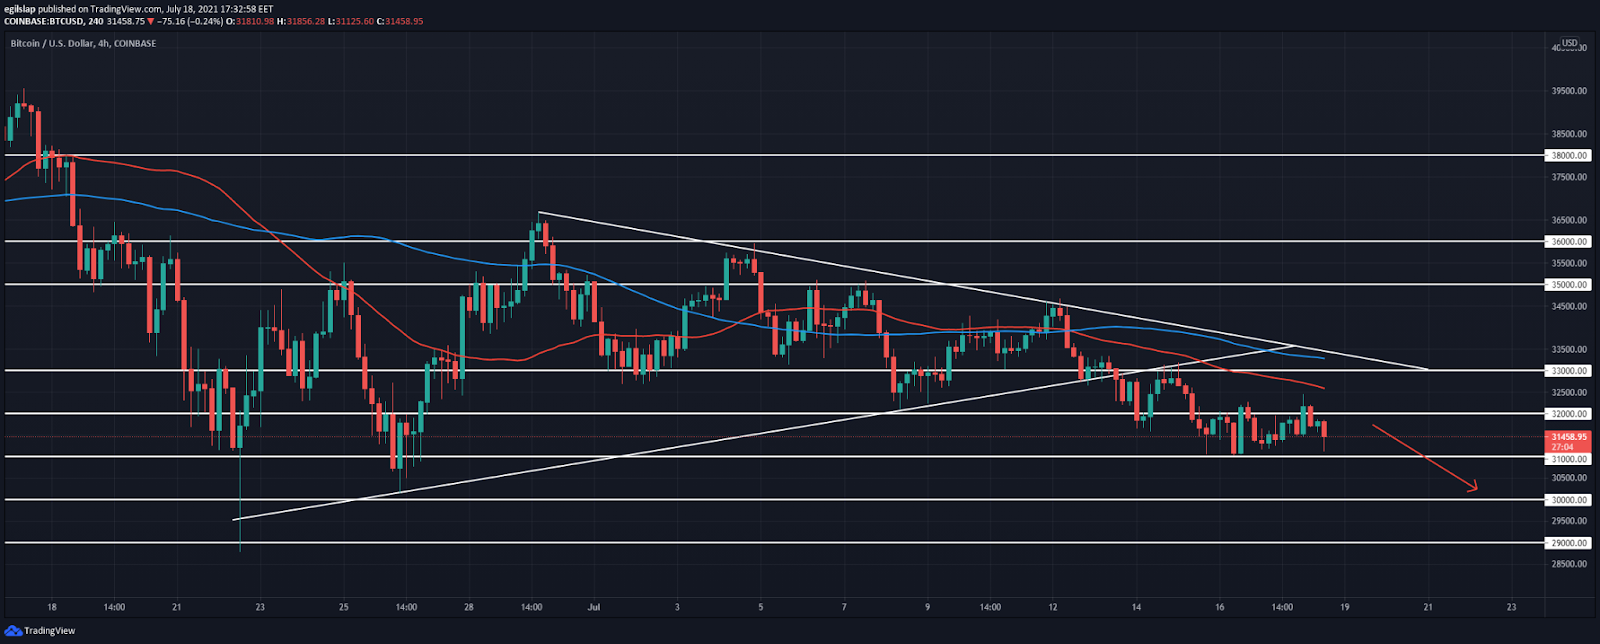 Bitcoin Price Analysis: BTC spikes above $32,000, further lows from there?